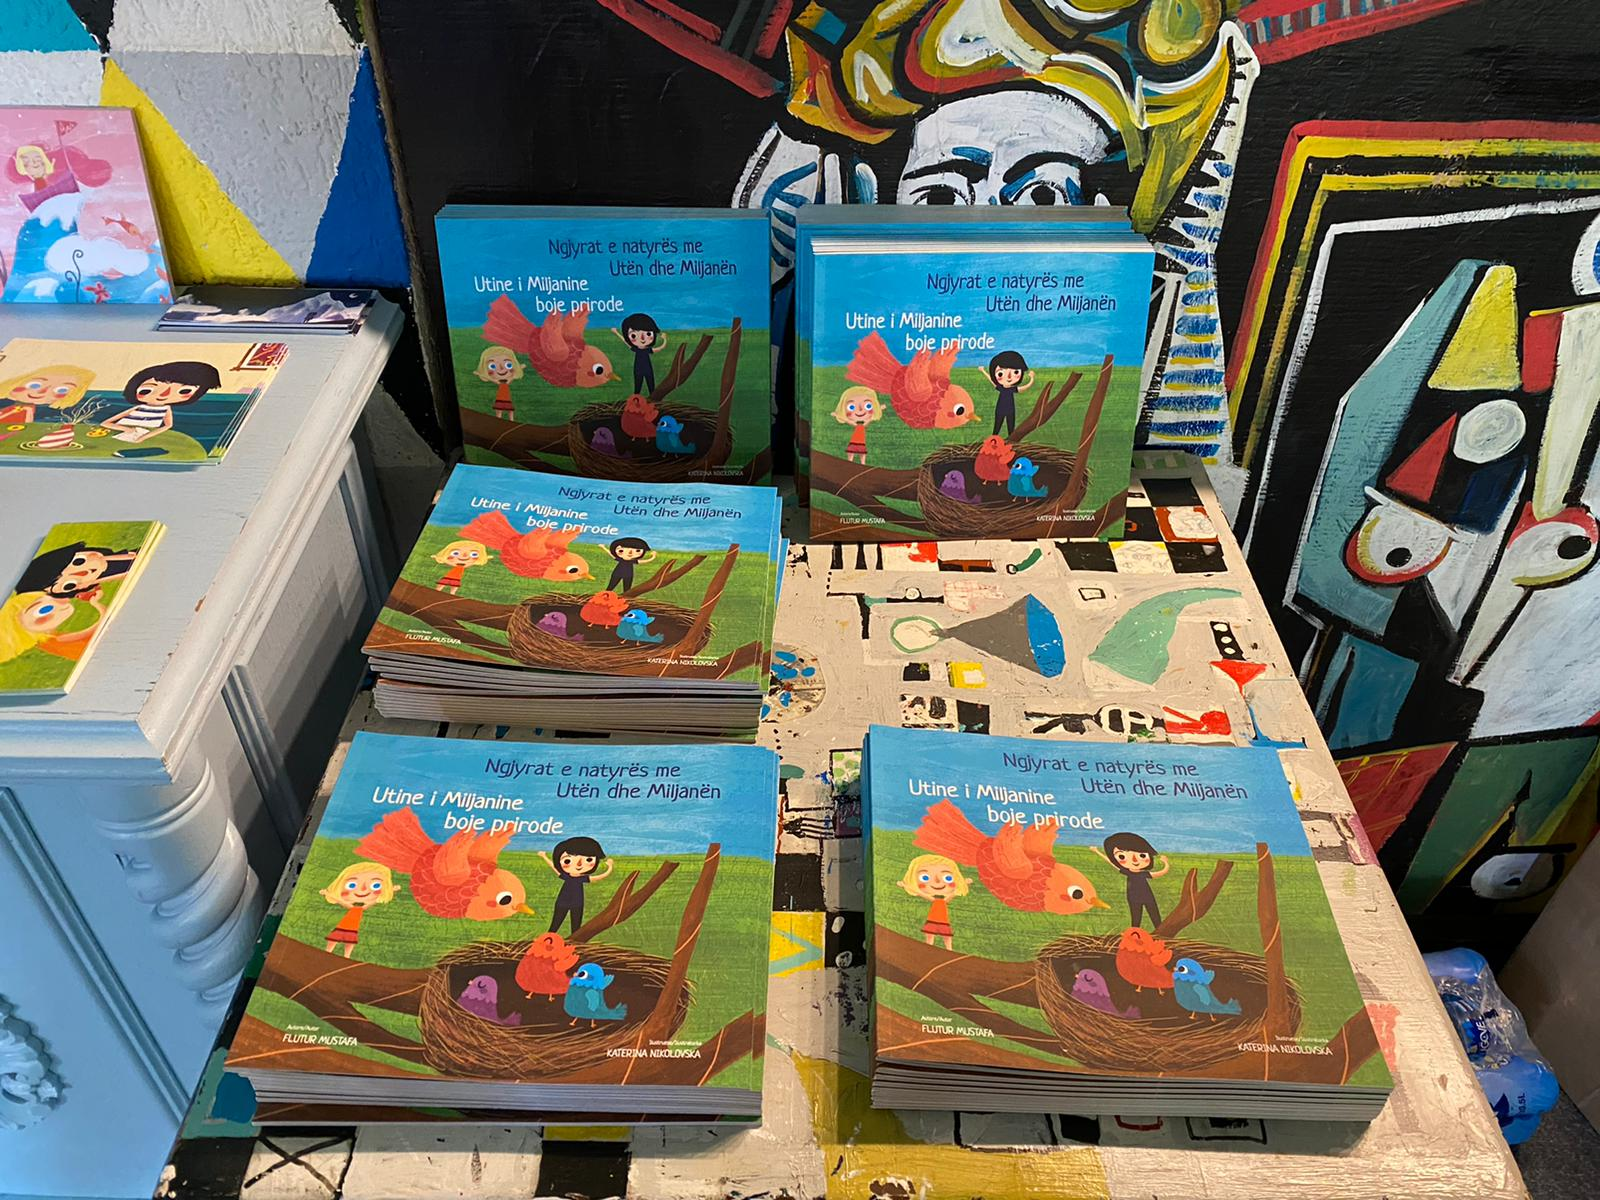 Building Confidence Among Communities with Bilingual Children's Book